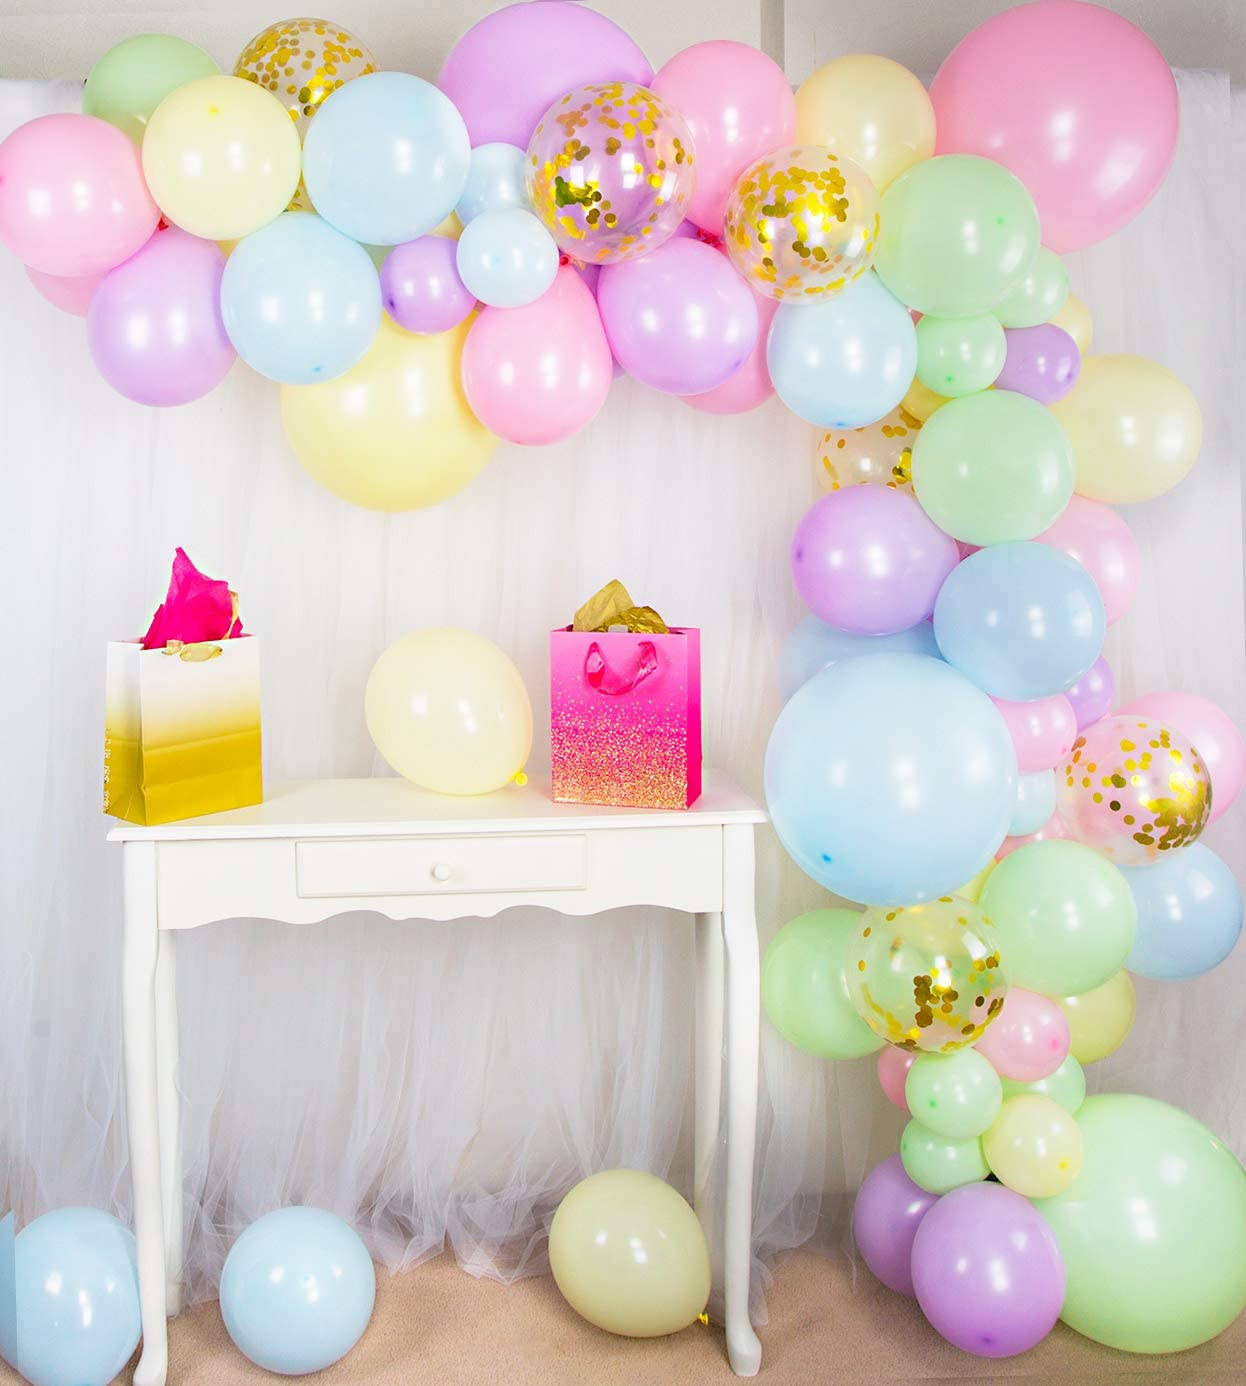 Shimmer and Confetti Premium 84 Pack Pastel Rainbow Unicorn Balloon Arch and Garland Kit – 6 Gold Confetti, Strip, Pink, Purple, Yellow, Blue, Green. Unicorn Donut Ice Cream Party Supplies, Birthdays, Christmas and Baby Showers